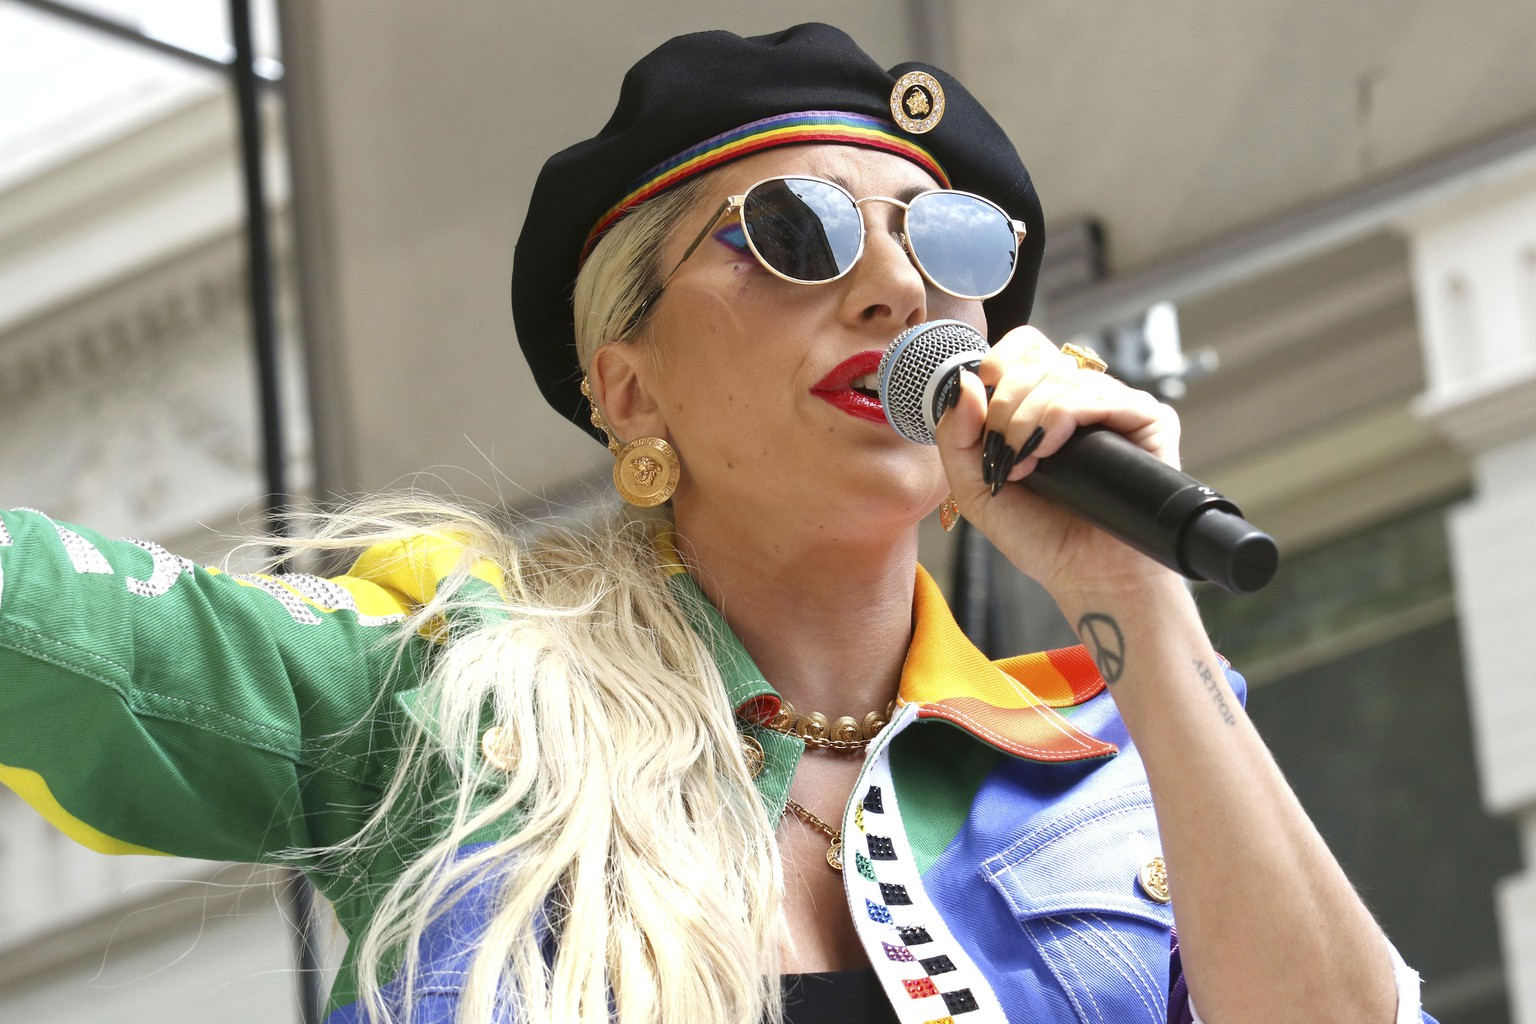 FILE - This June 28, 2019 file photo shows Lady Gaga performing in the second annual Stonewall Day honoring the 50th anniversary of the Stonewall riots, hosted by Pride Live and iHeartMedia in New York. Officials say Lady Gaga's dog walker was shot and her two French bulldogs stolen in Hollywood during an armed robbery. Los Angeles police are seeking two suspects, thought it's not known if both were armed, in connection with the Wednesday night shooting. (Photo by Greg Allen/Invision/AP, File) Lady Gaga